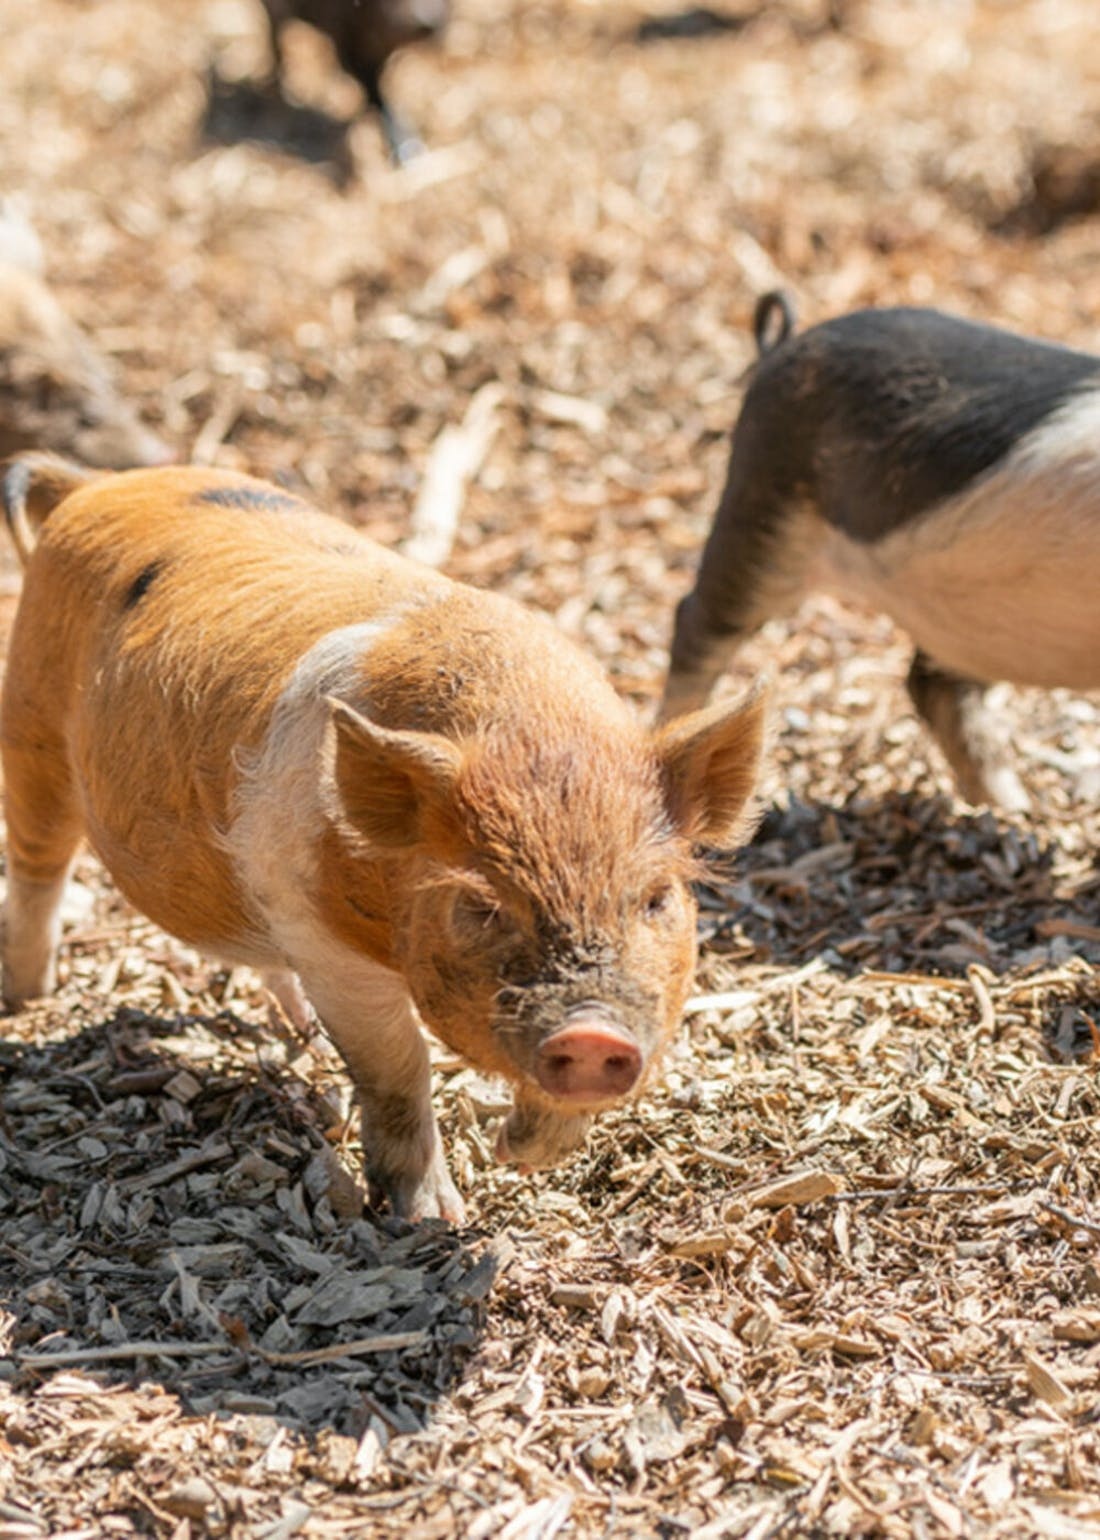 Virgin Experience Days Piggy Pet & Play for 2 at Kew Little Pigs